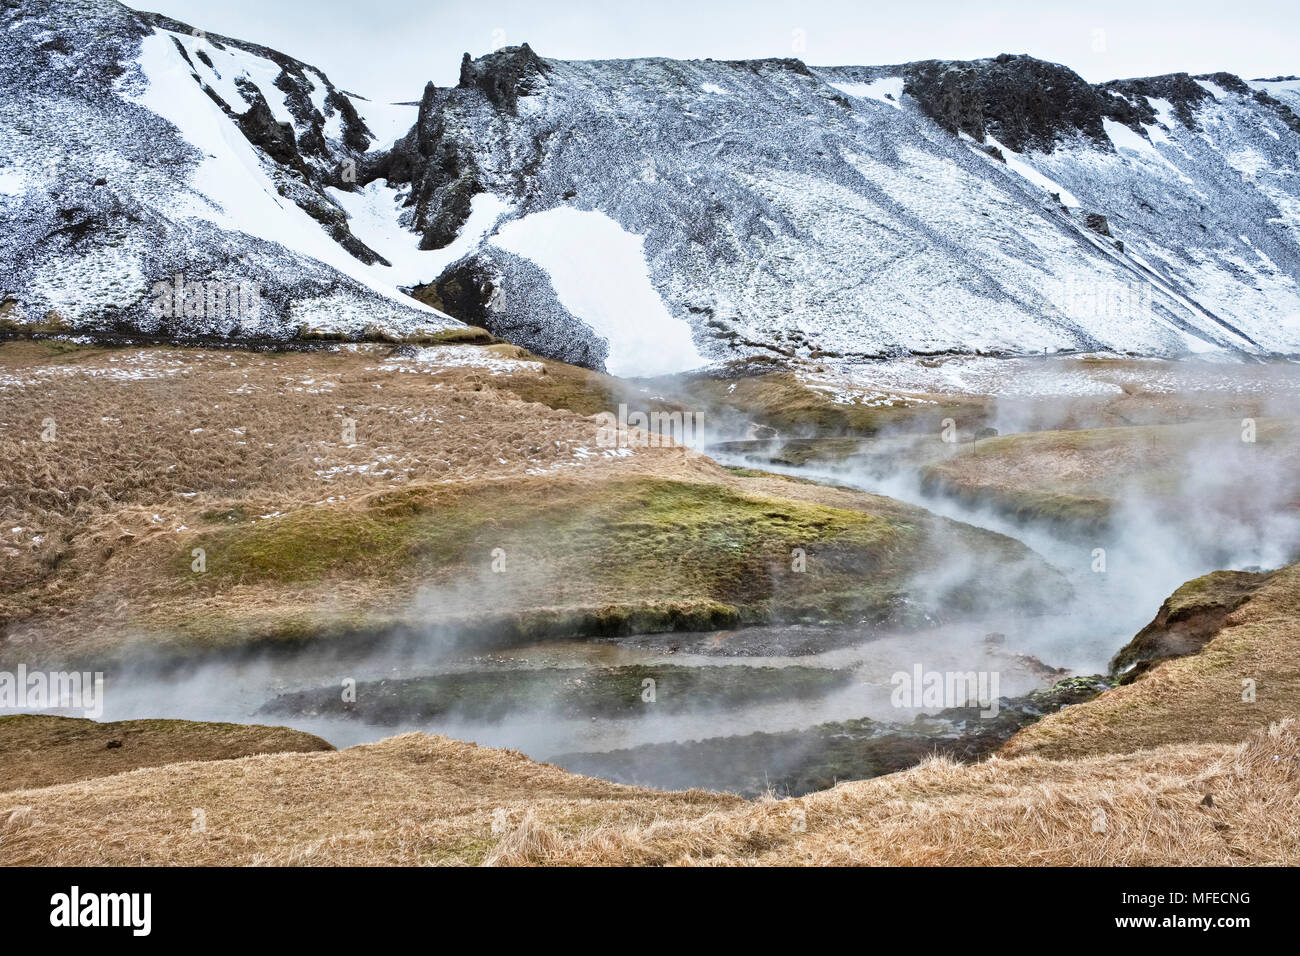 Near Hveragerði, Iceland. Steam rising from the geothermal hot river at Reykjadalur - Stock Image